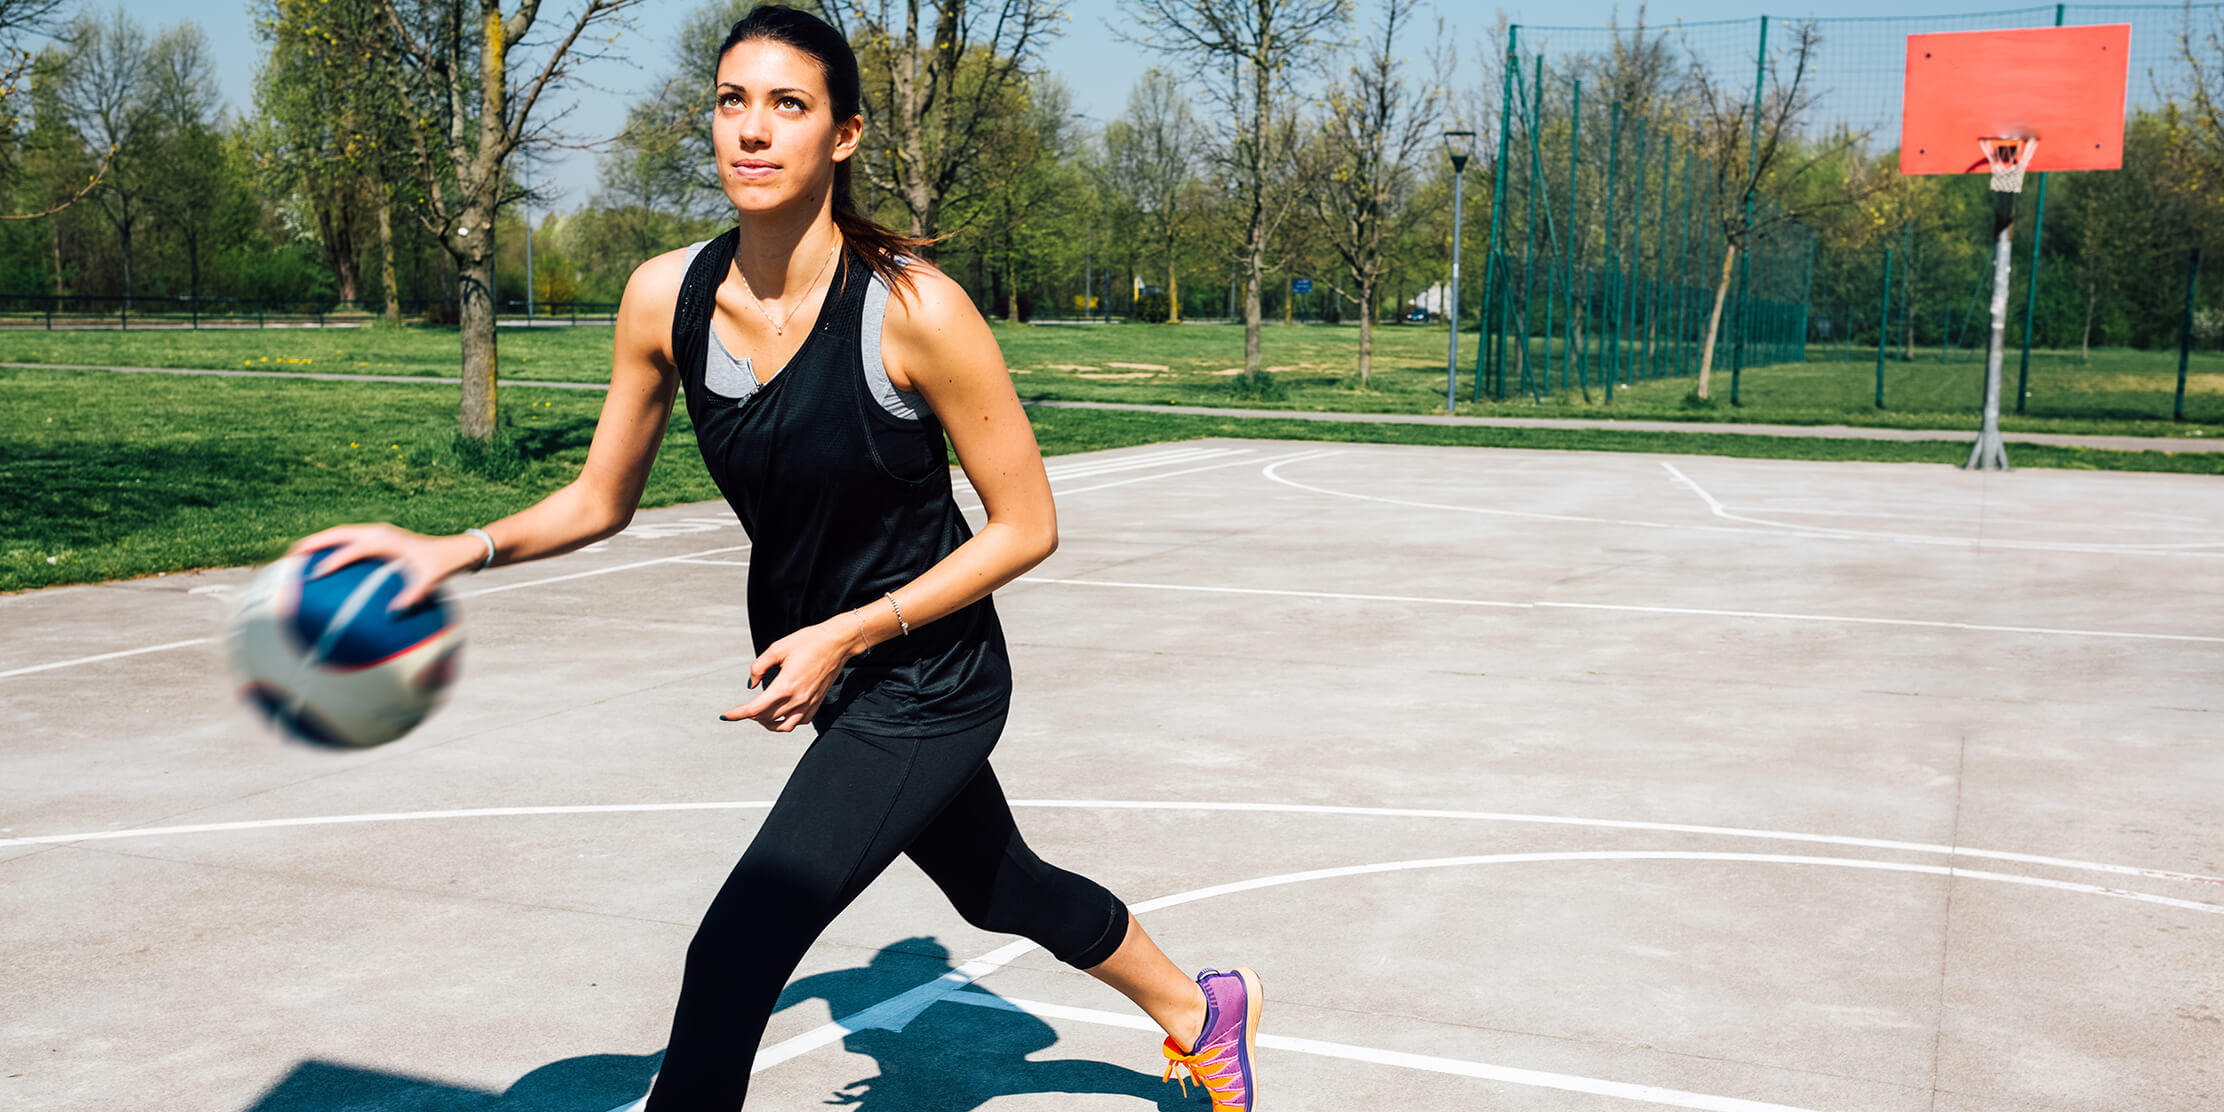 Photo for Mayo Clinic Q and A: Some activities increase the risk of ACL injury